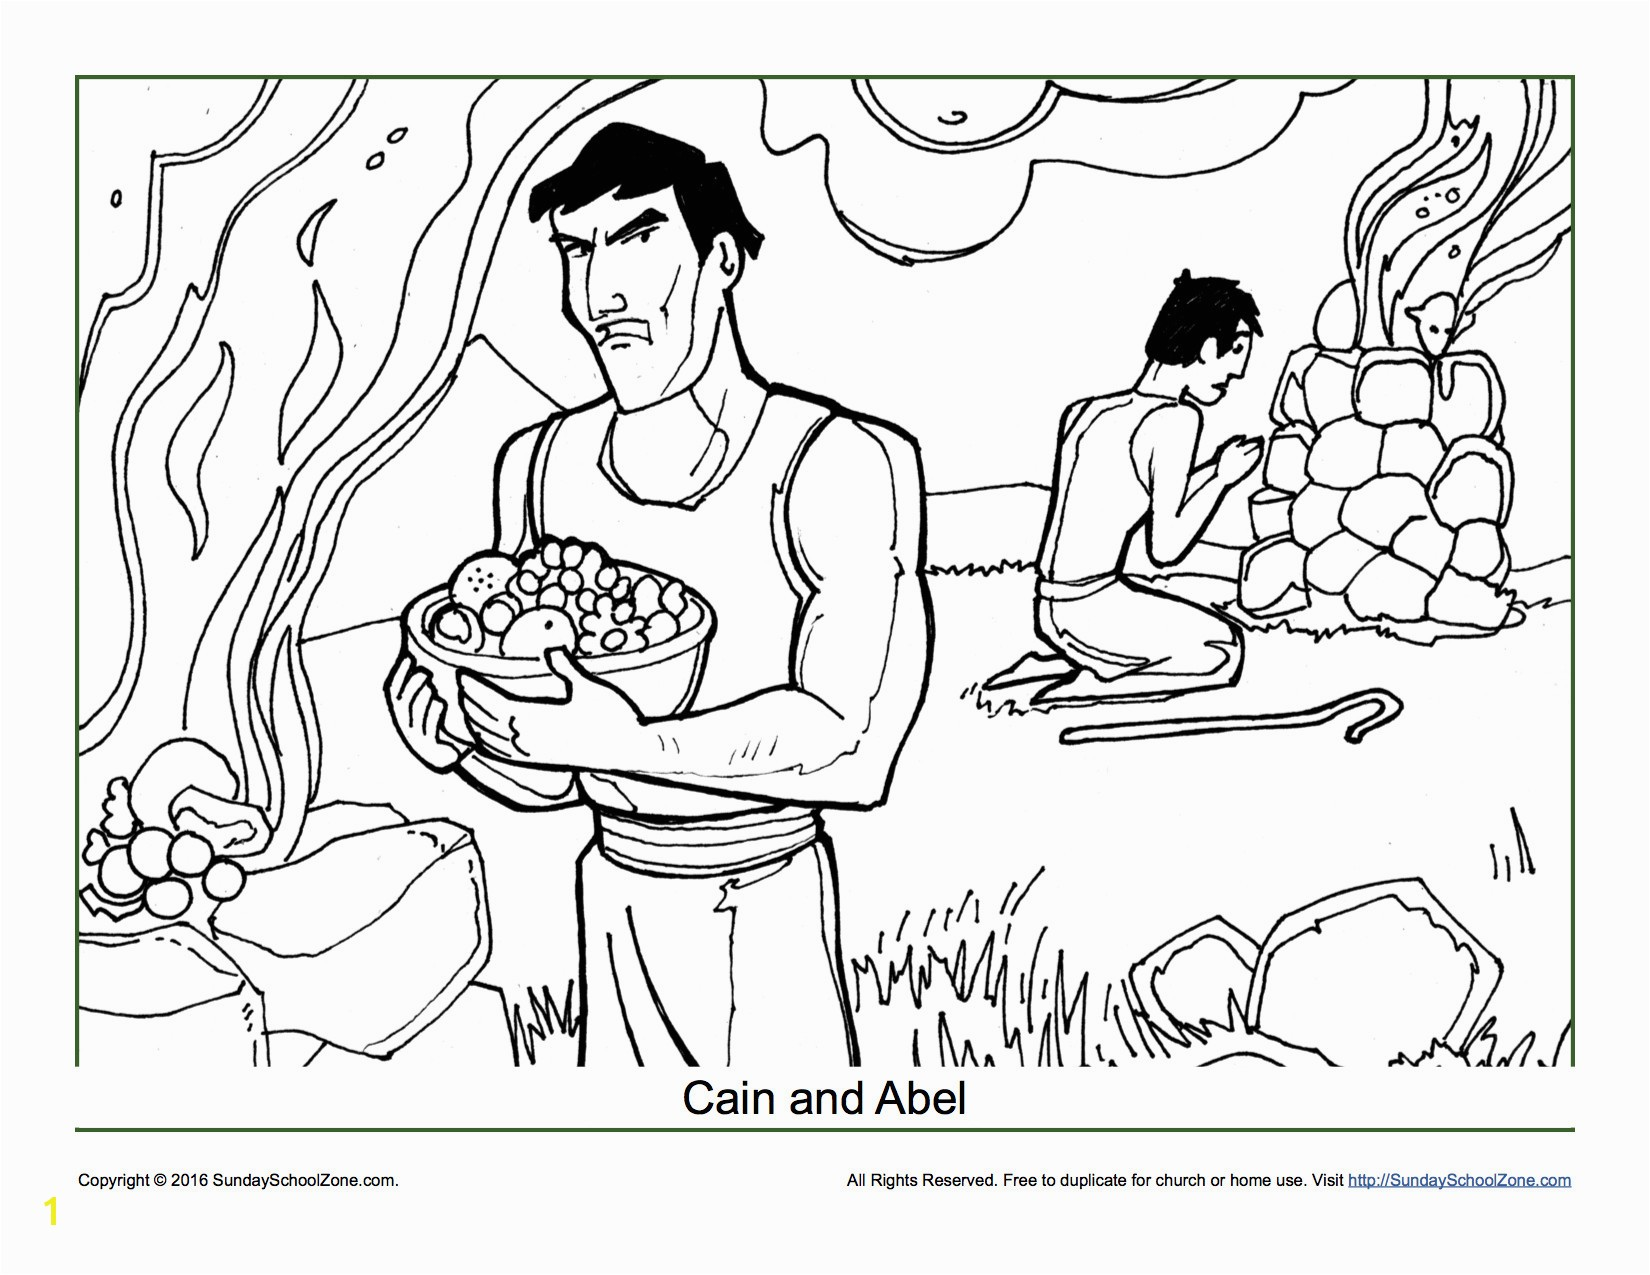 Free Sunday School Coloring Pages for Kids Coloring Pages Love Your Neighbor Yourself Awesome 18cute Free